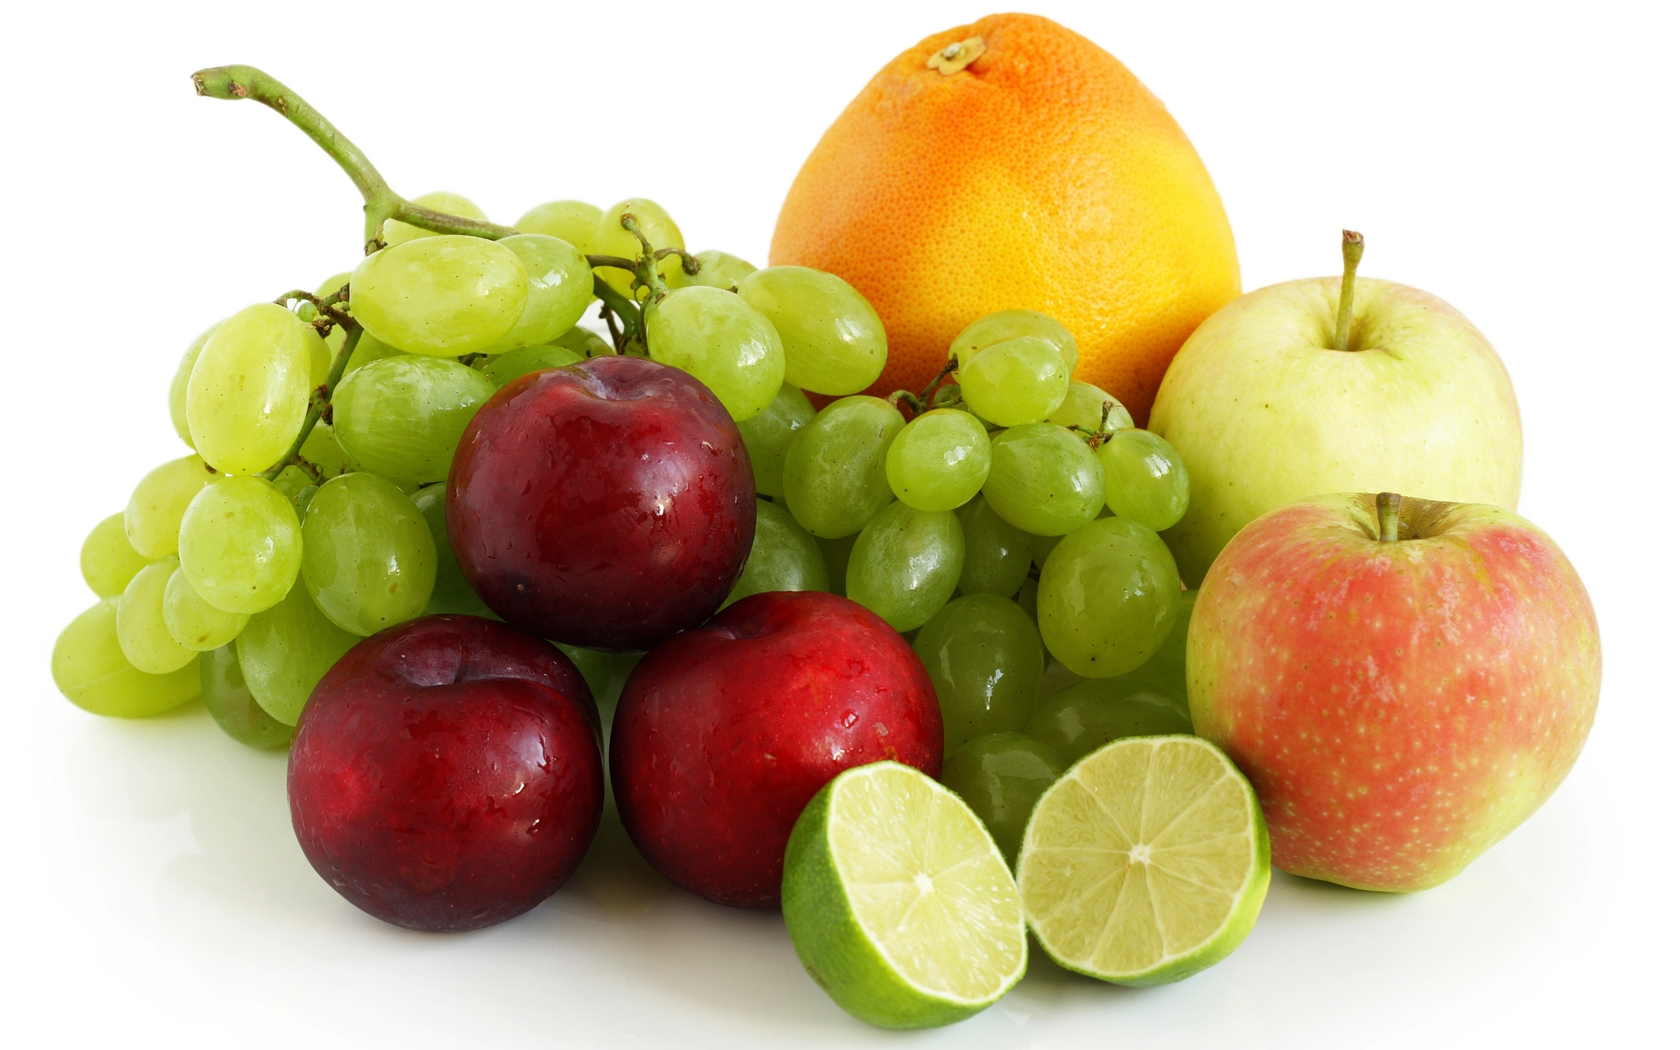 Fruits images hd - Fruits Wallpapers Hd